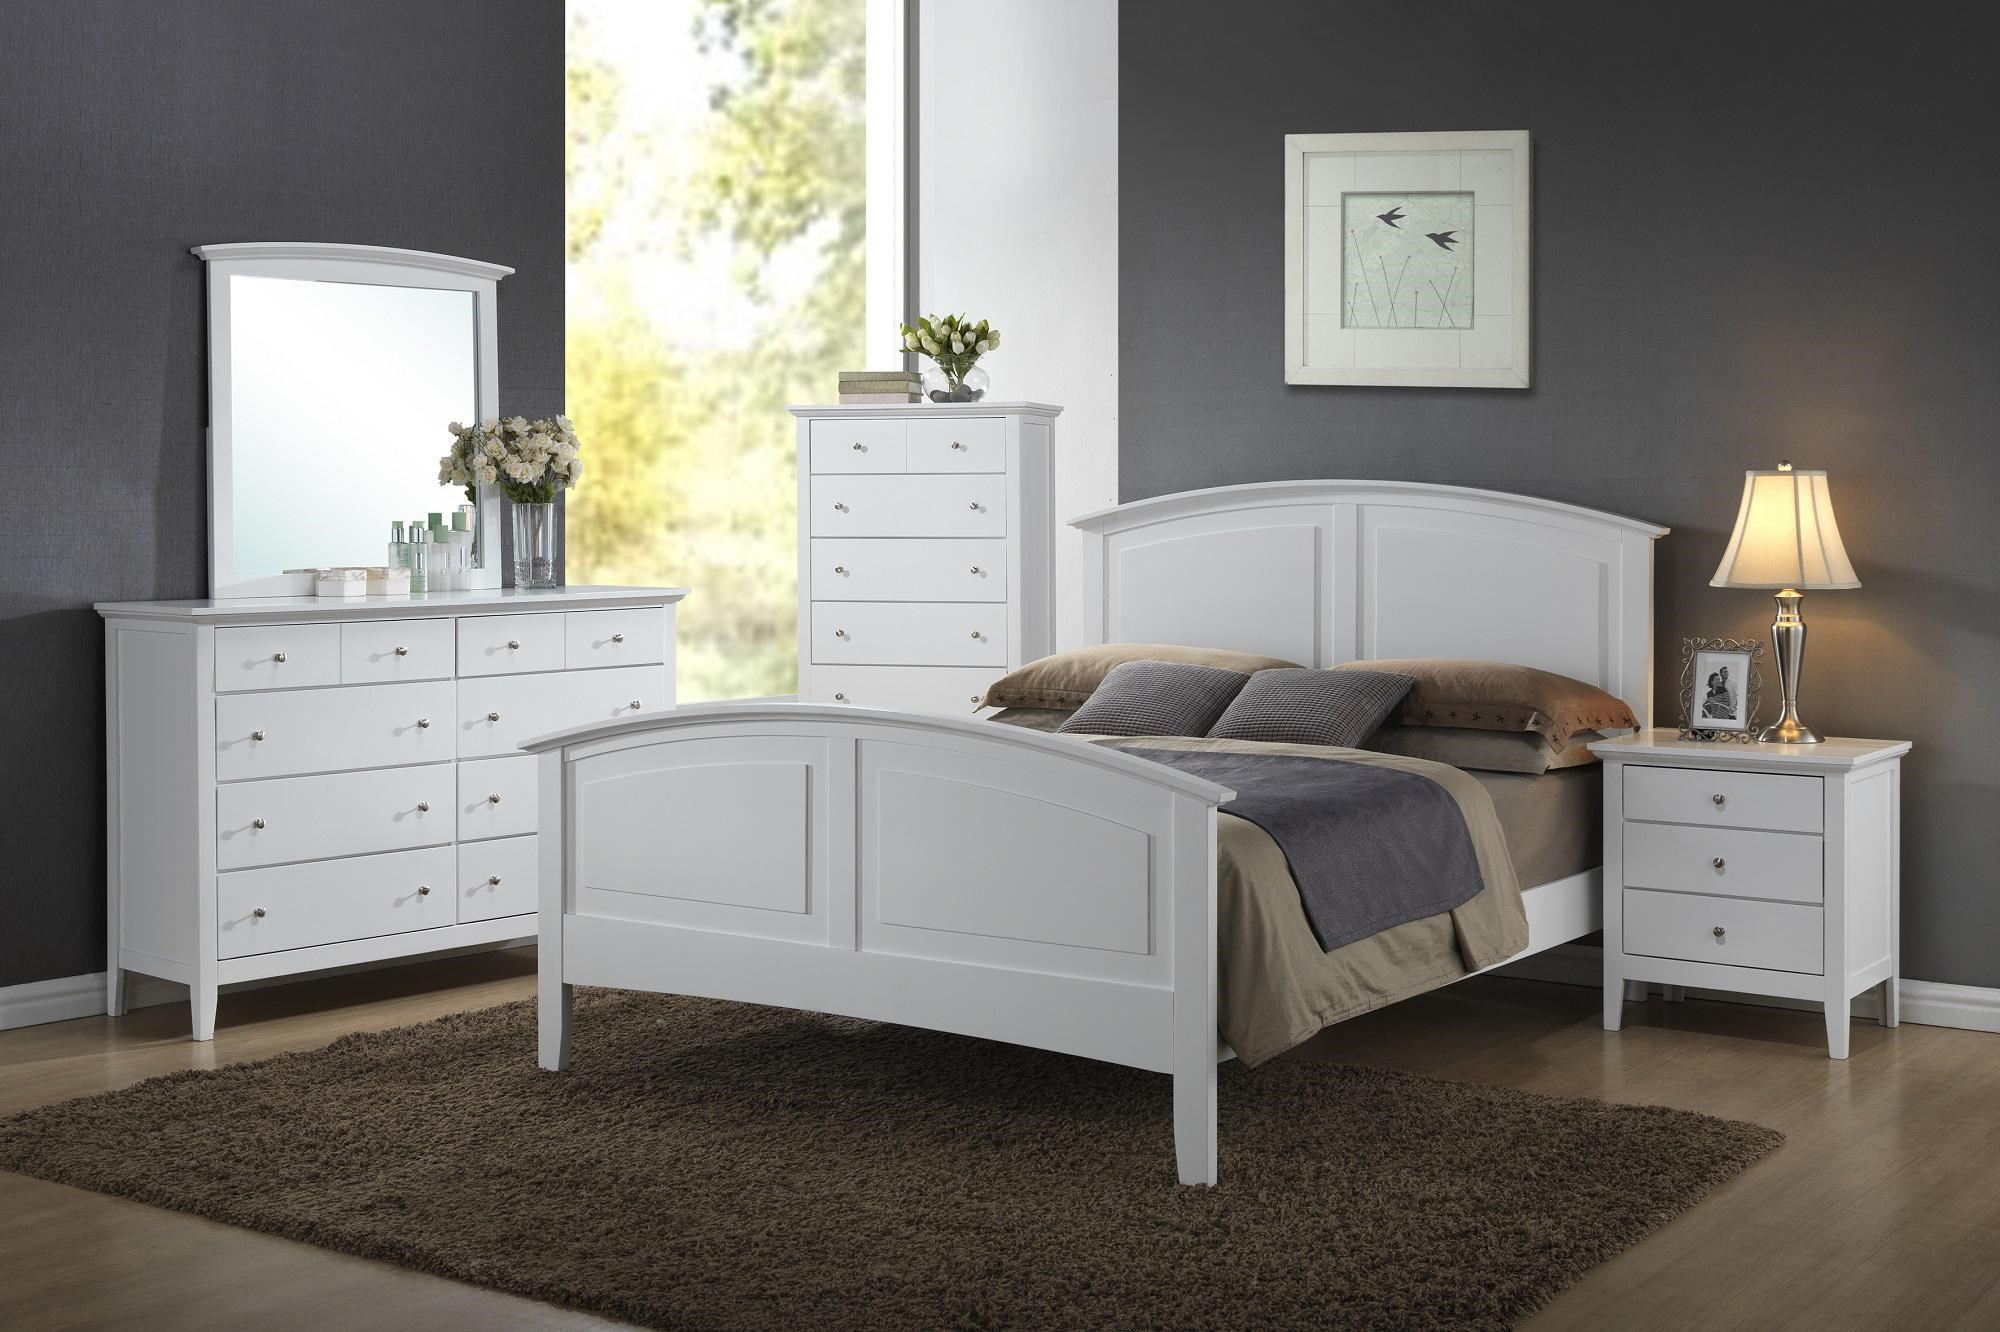 C3226A 6 Piece Full Bedroom Group by Lifestyle at Sam Levitz Furniture